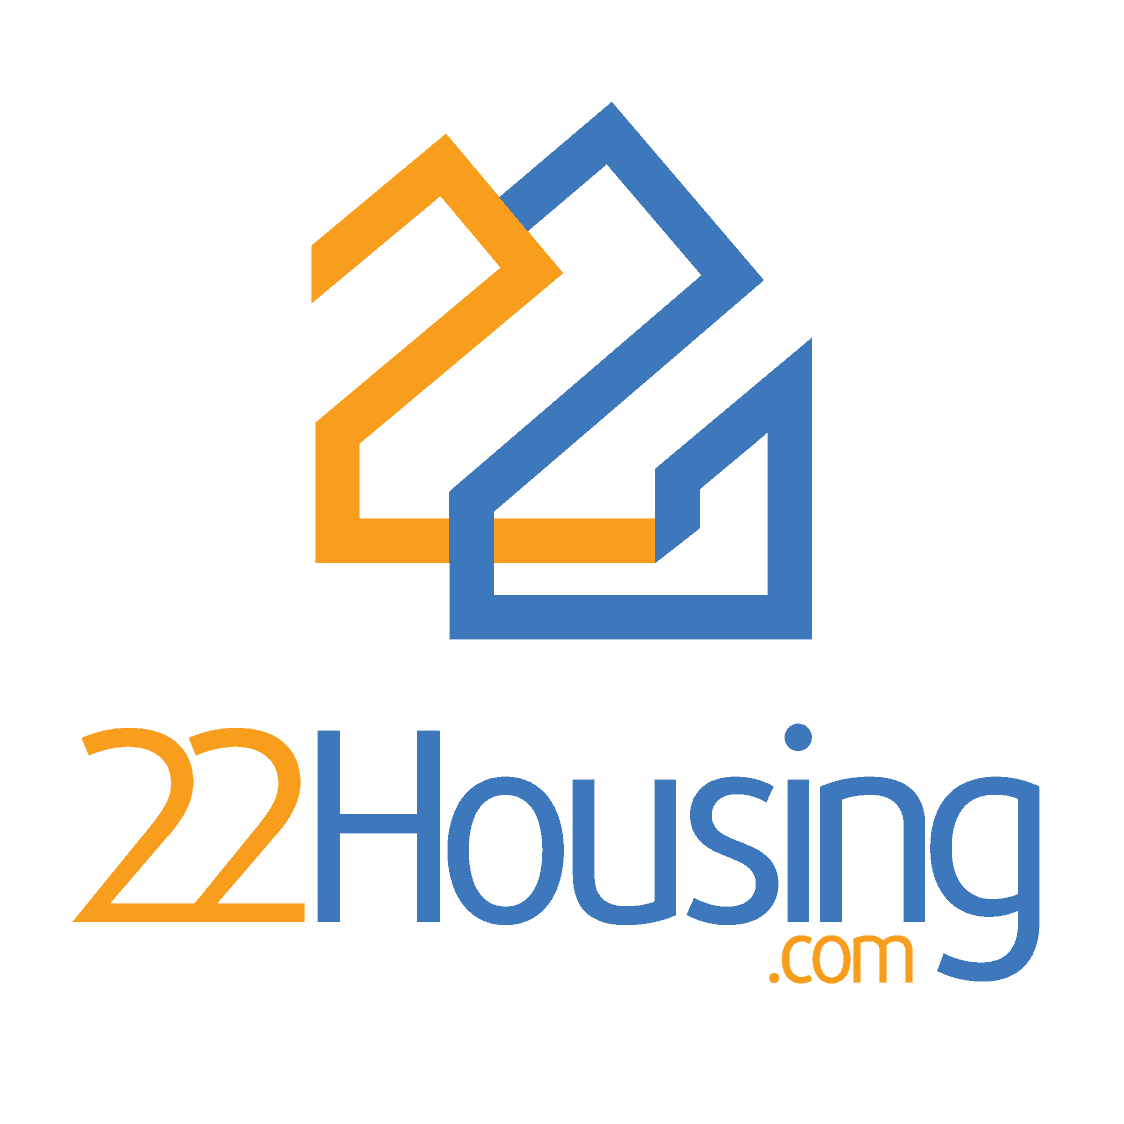 22housing is an Investment company. We have more than 300  rooms and apartments for rent in hanoi, best services, hotline 0972248975, email: 22housing@gmail.com